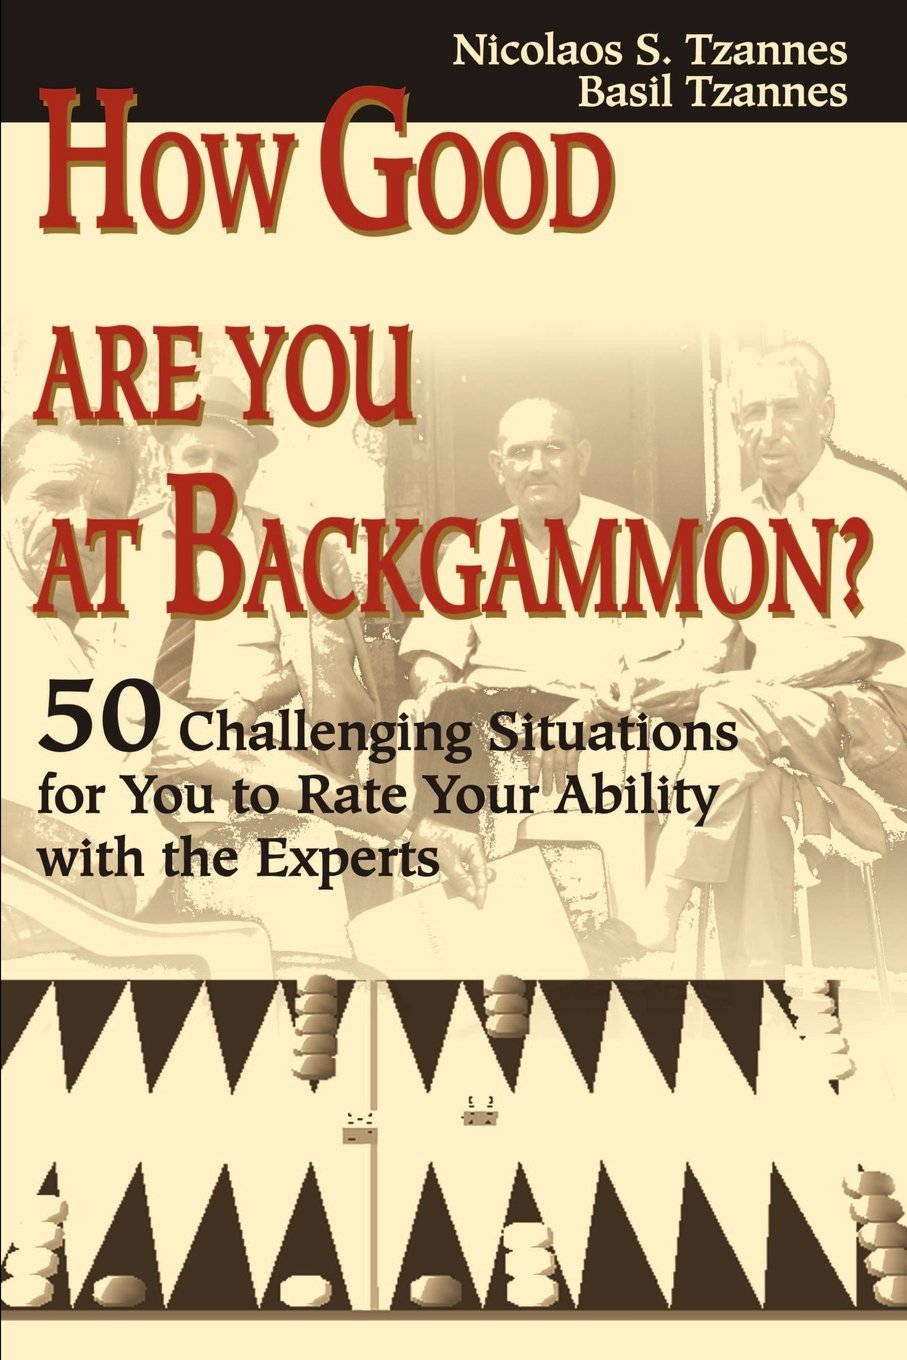 how good are you at backgammon challenging situations for you 50 challenging situations for you to rate your ability the experts amazon co uk nico tzannes 9780595176427 books